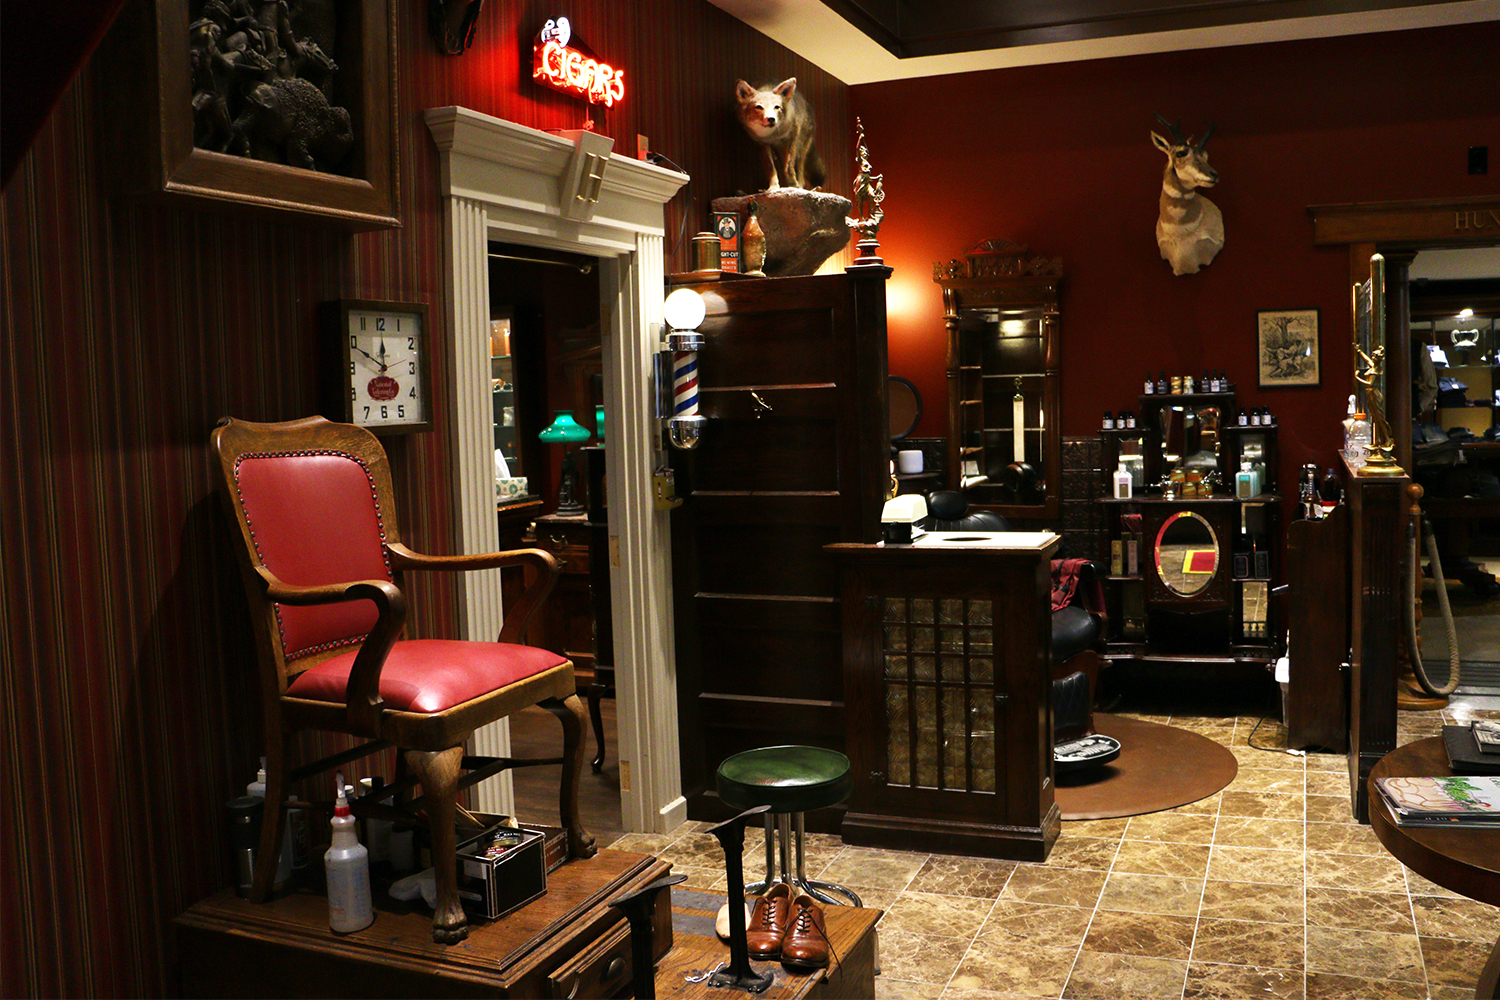 Heimie's Haberdashery Shoe Shine and Barbershop